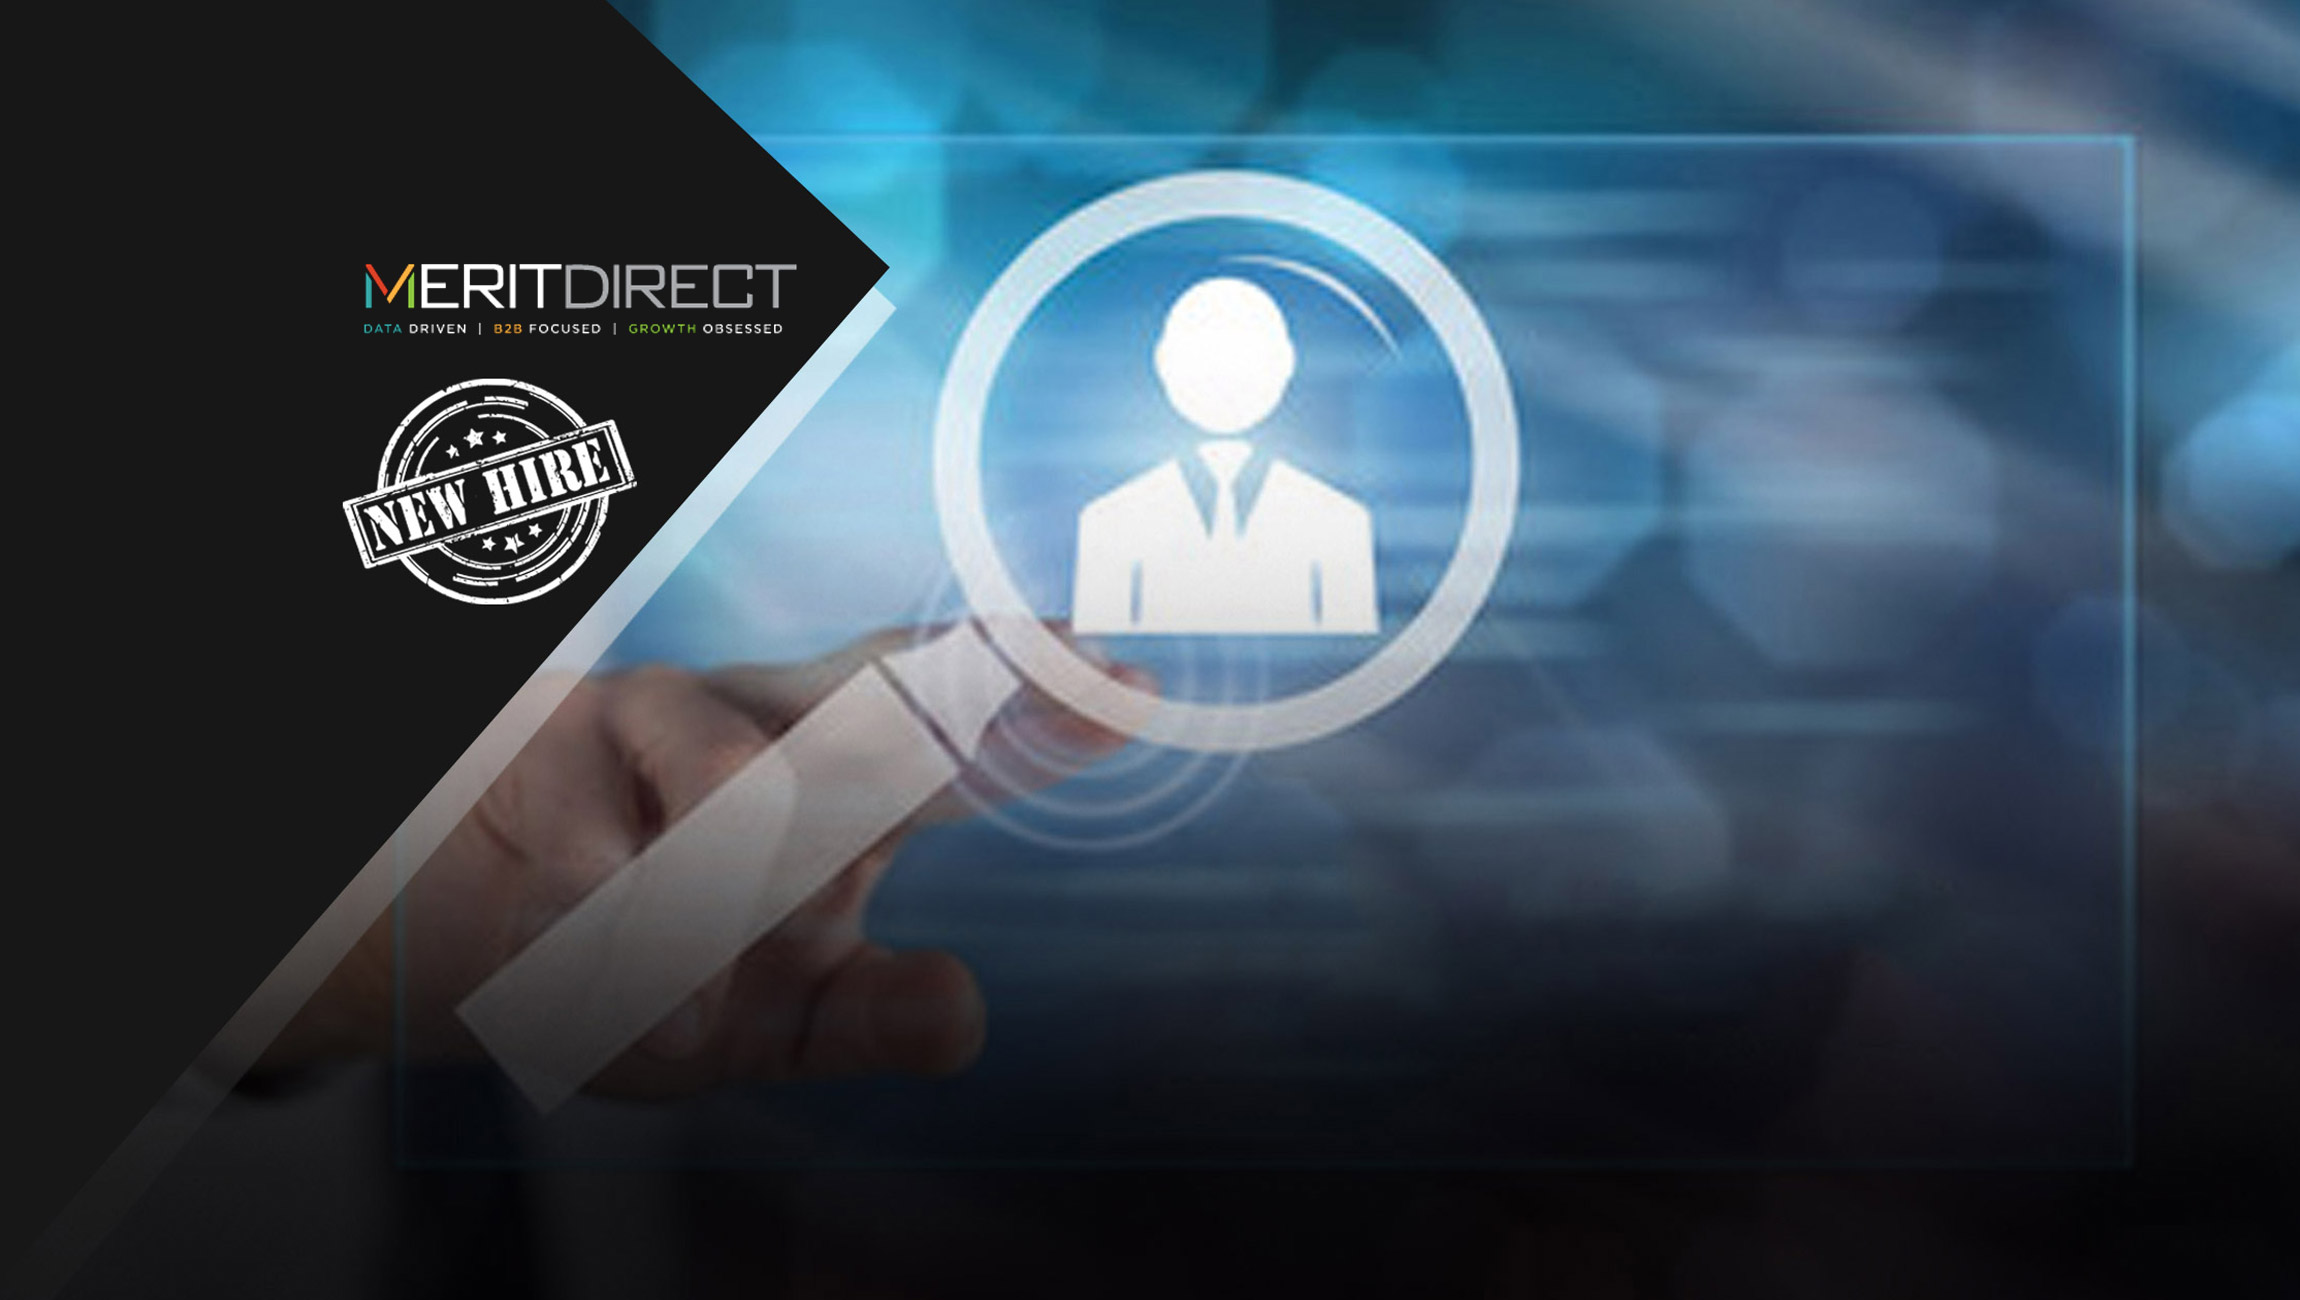 MeritDirect Adds New Hires to B2B Marketing Team